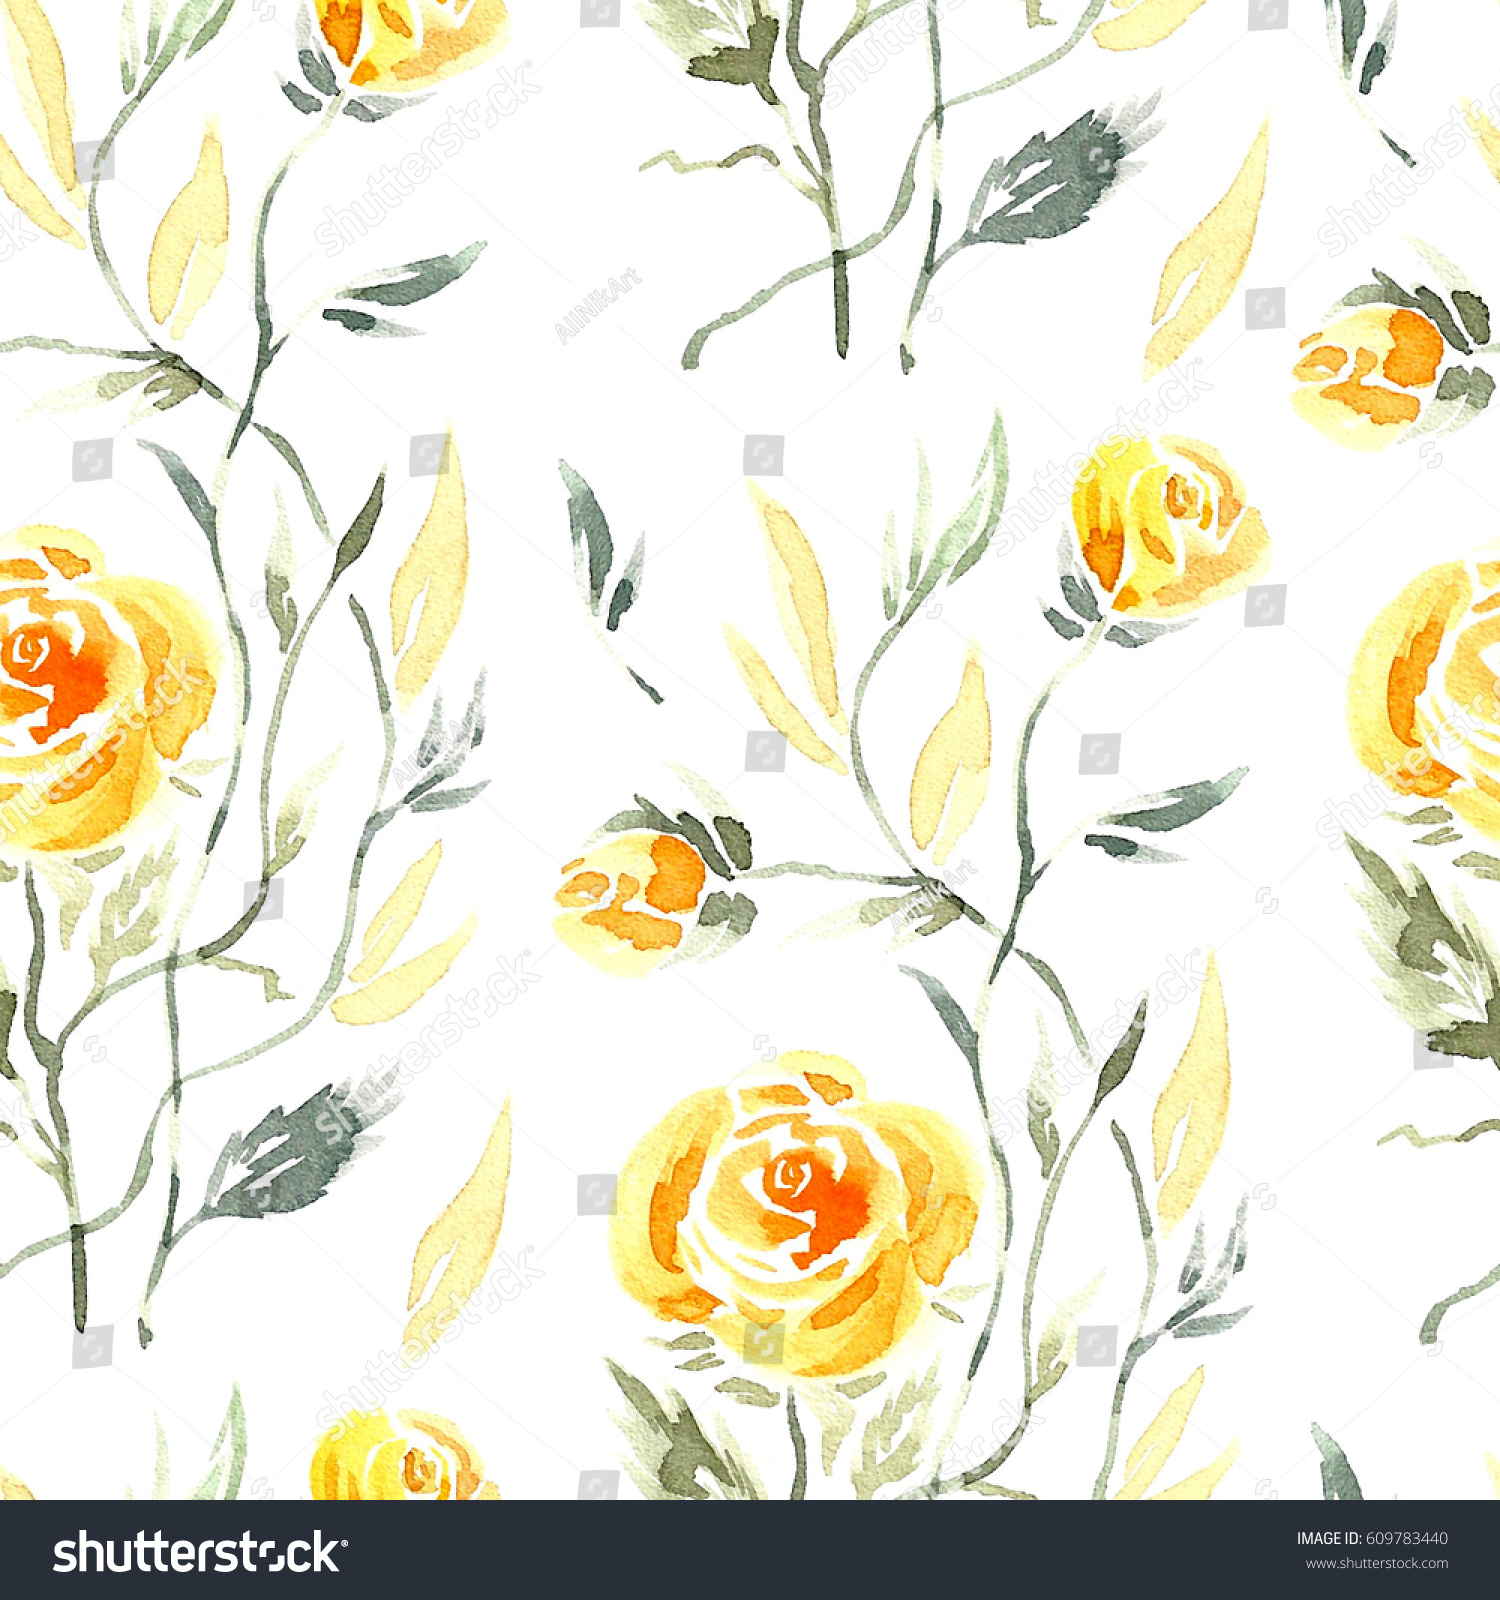 Climbing Rose Watercolor Yellow Roses Leaves Stock Illustration